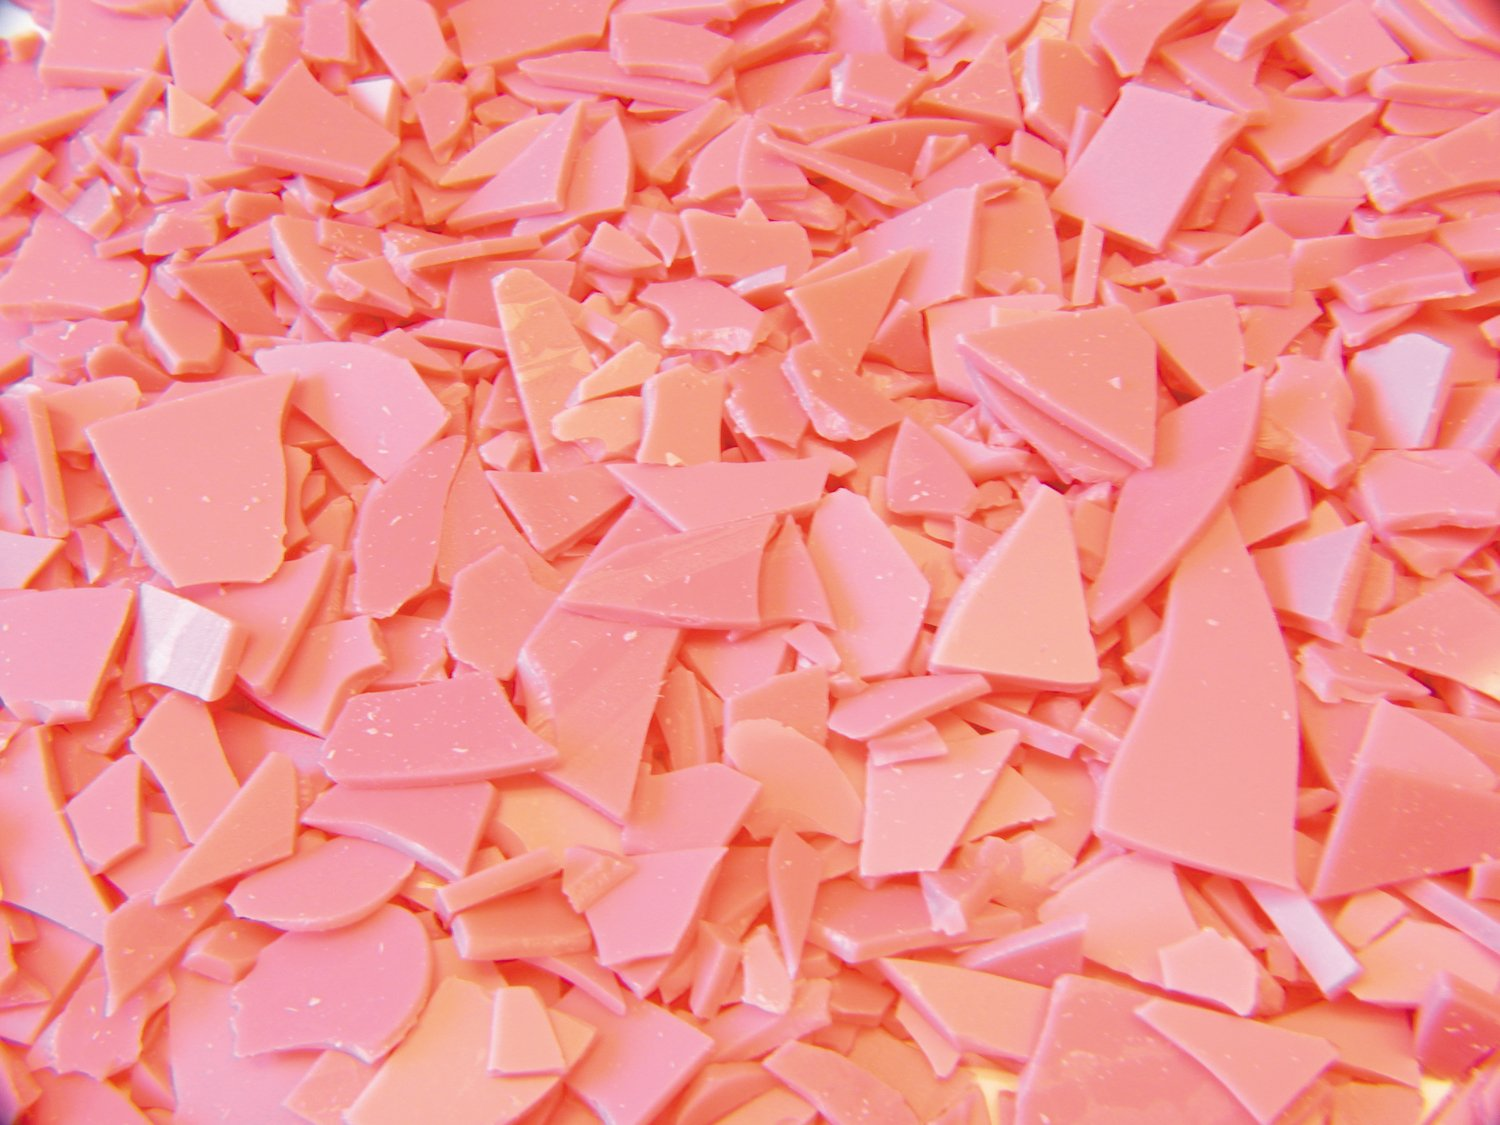 Freeman Flakes Filigree Pink 1 Lb Bag Injection Melting Wax for Gold Silver Platinum Industrial Alloys